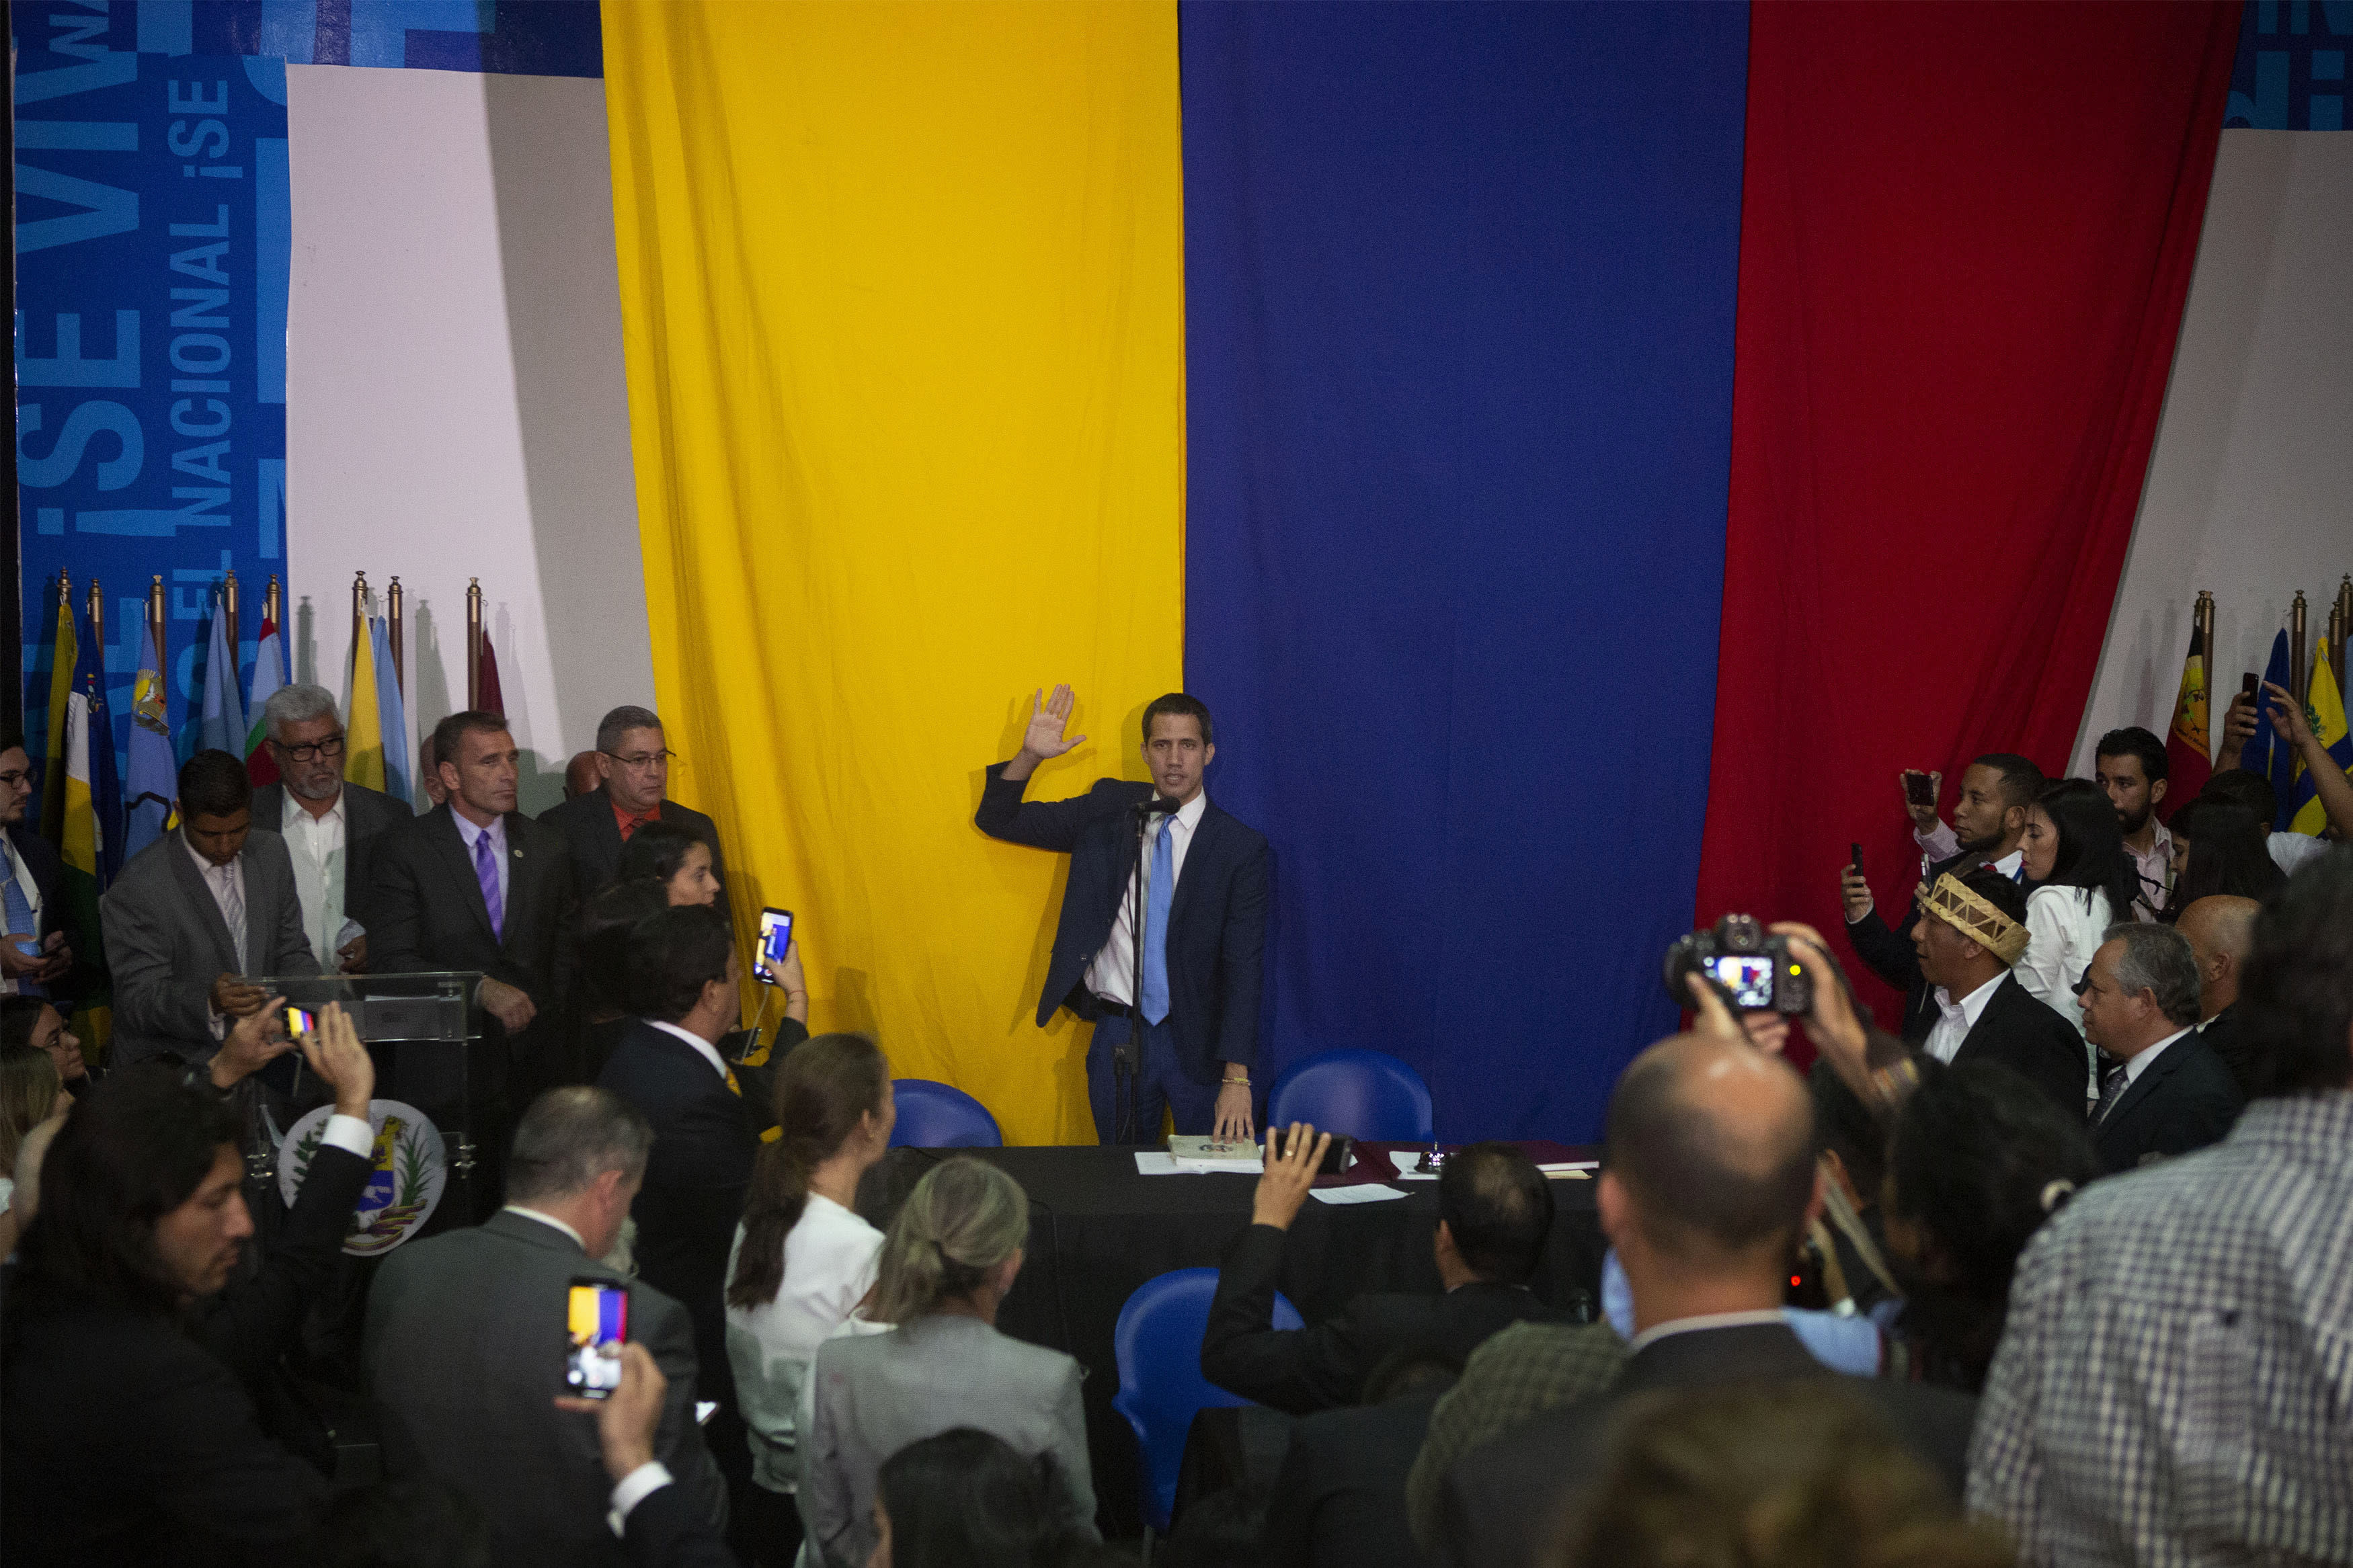 National Assembly President Juan Guaido swears himself in as President of the National Assembly with opposition lawmaker votes at the newspaper El Nacional's headquarters in Caracas, Venezuela, Sunday, Jan. 5, 2020. (AP Photo/Andrea Hernandez Briceño)